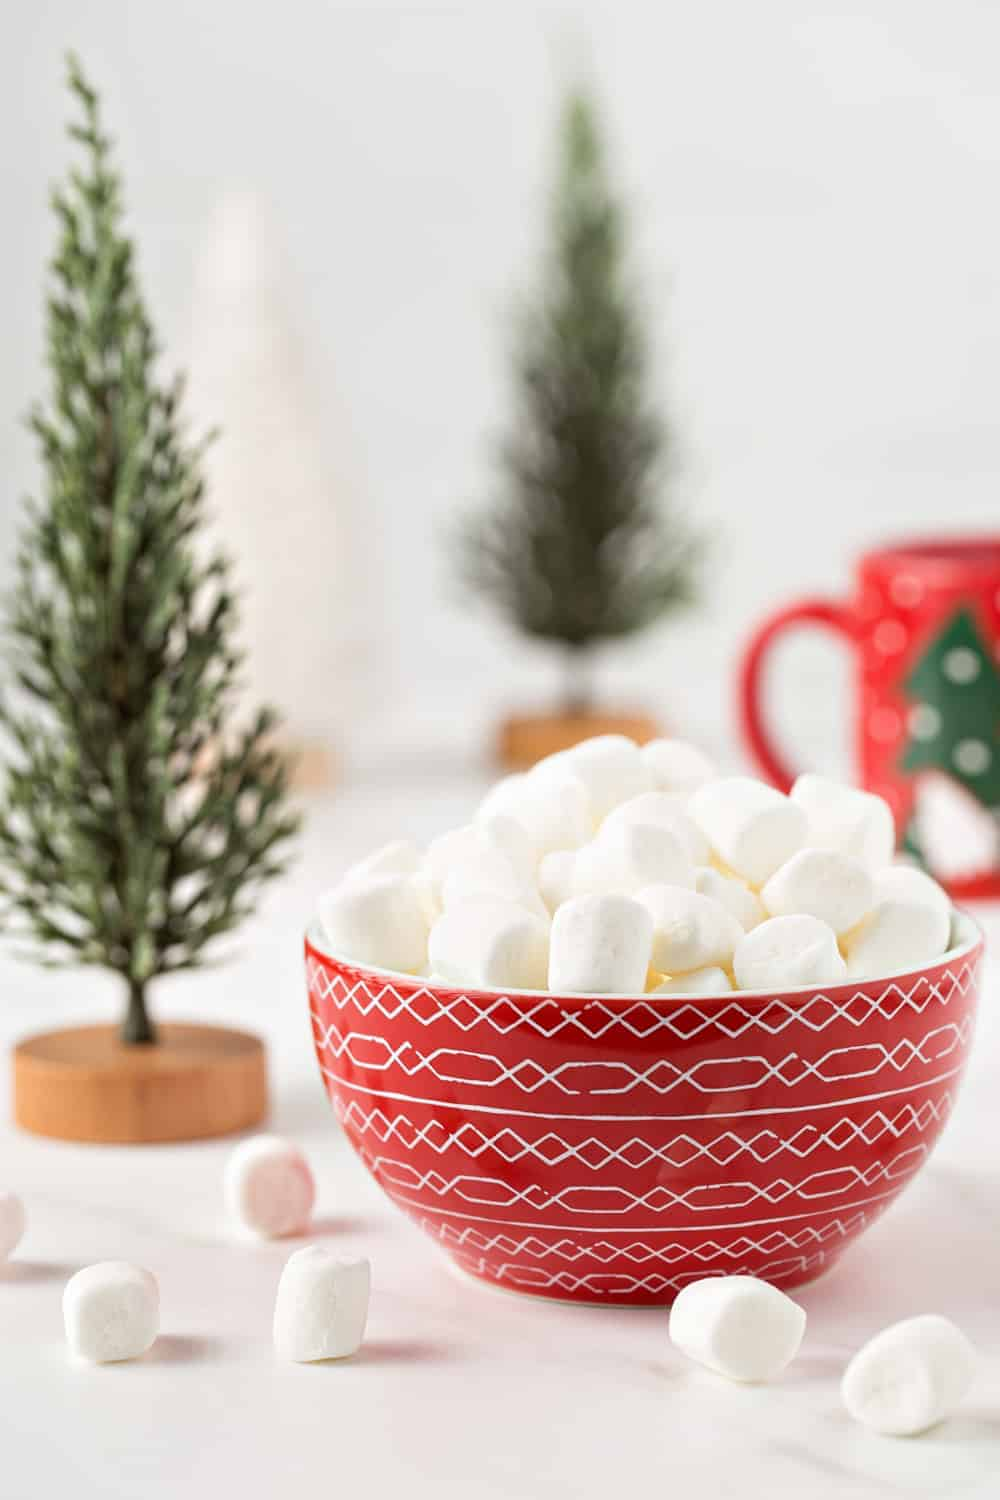 Campfire Mini White Marshmallows are the perfect marshmallow for any recipe. They're soft, fluffy and totally perfect!